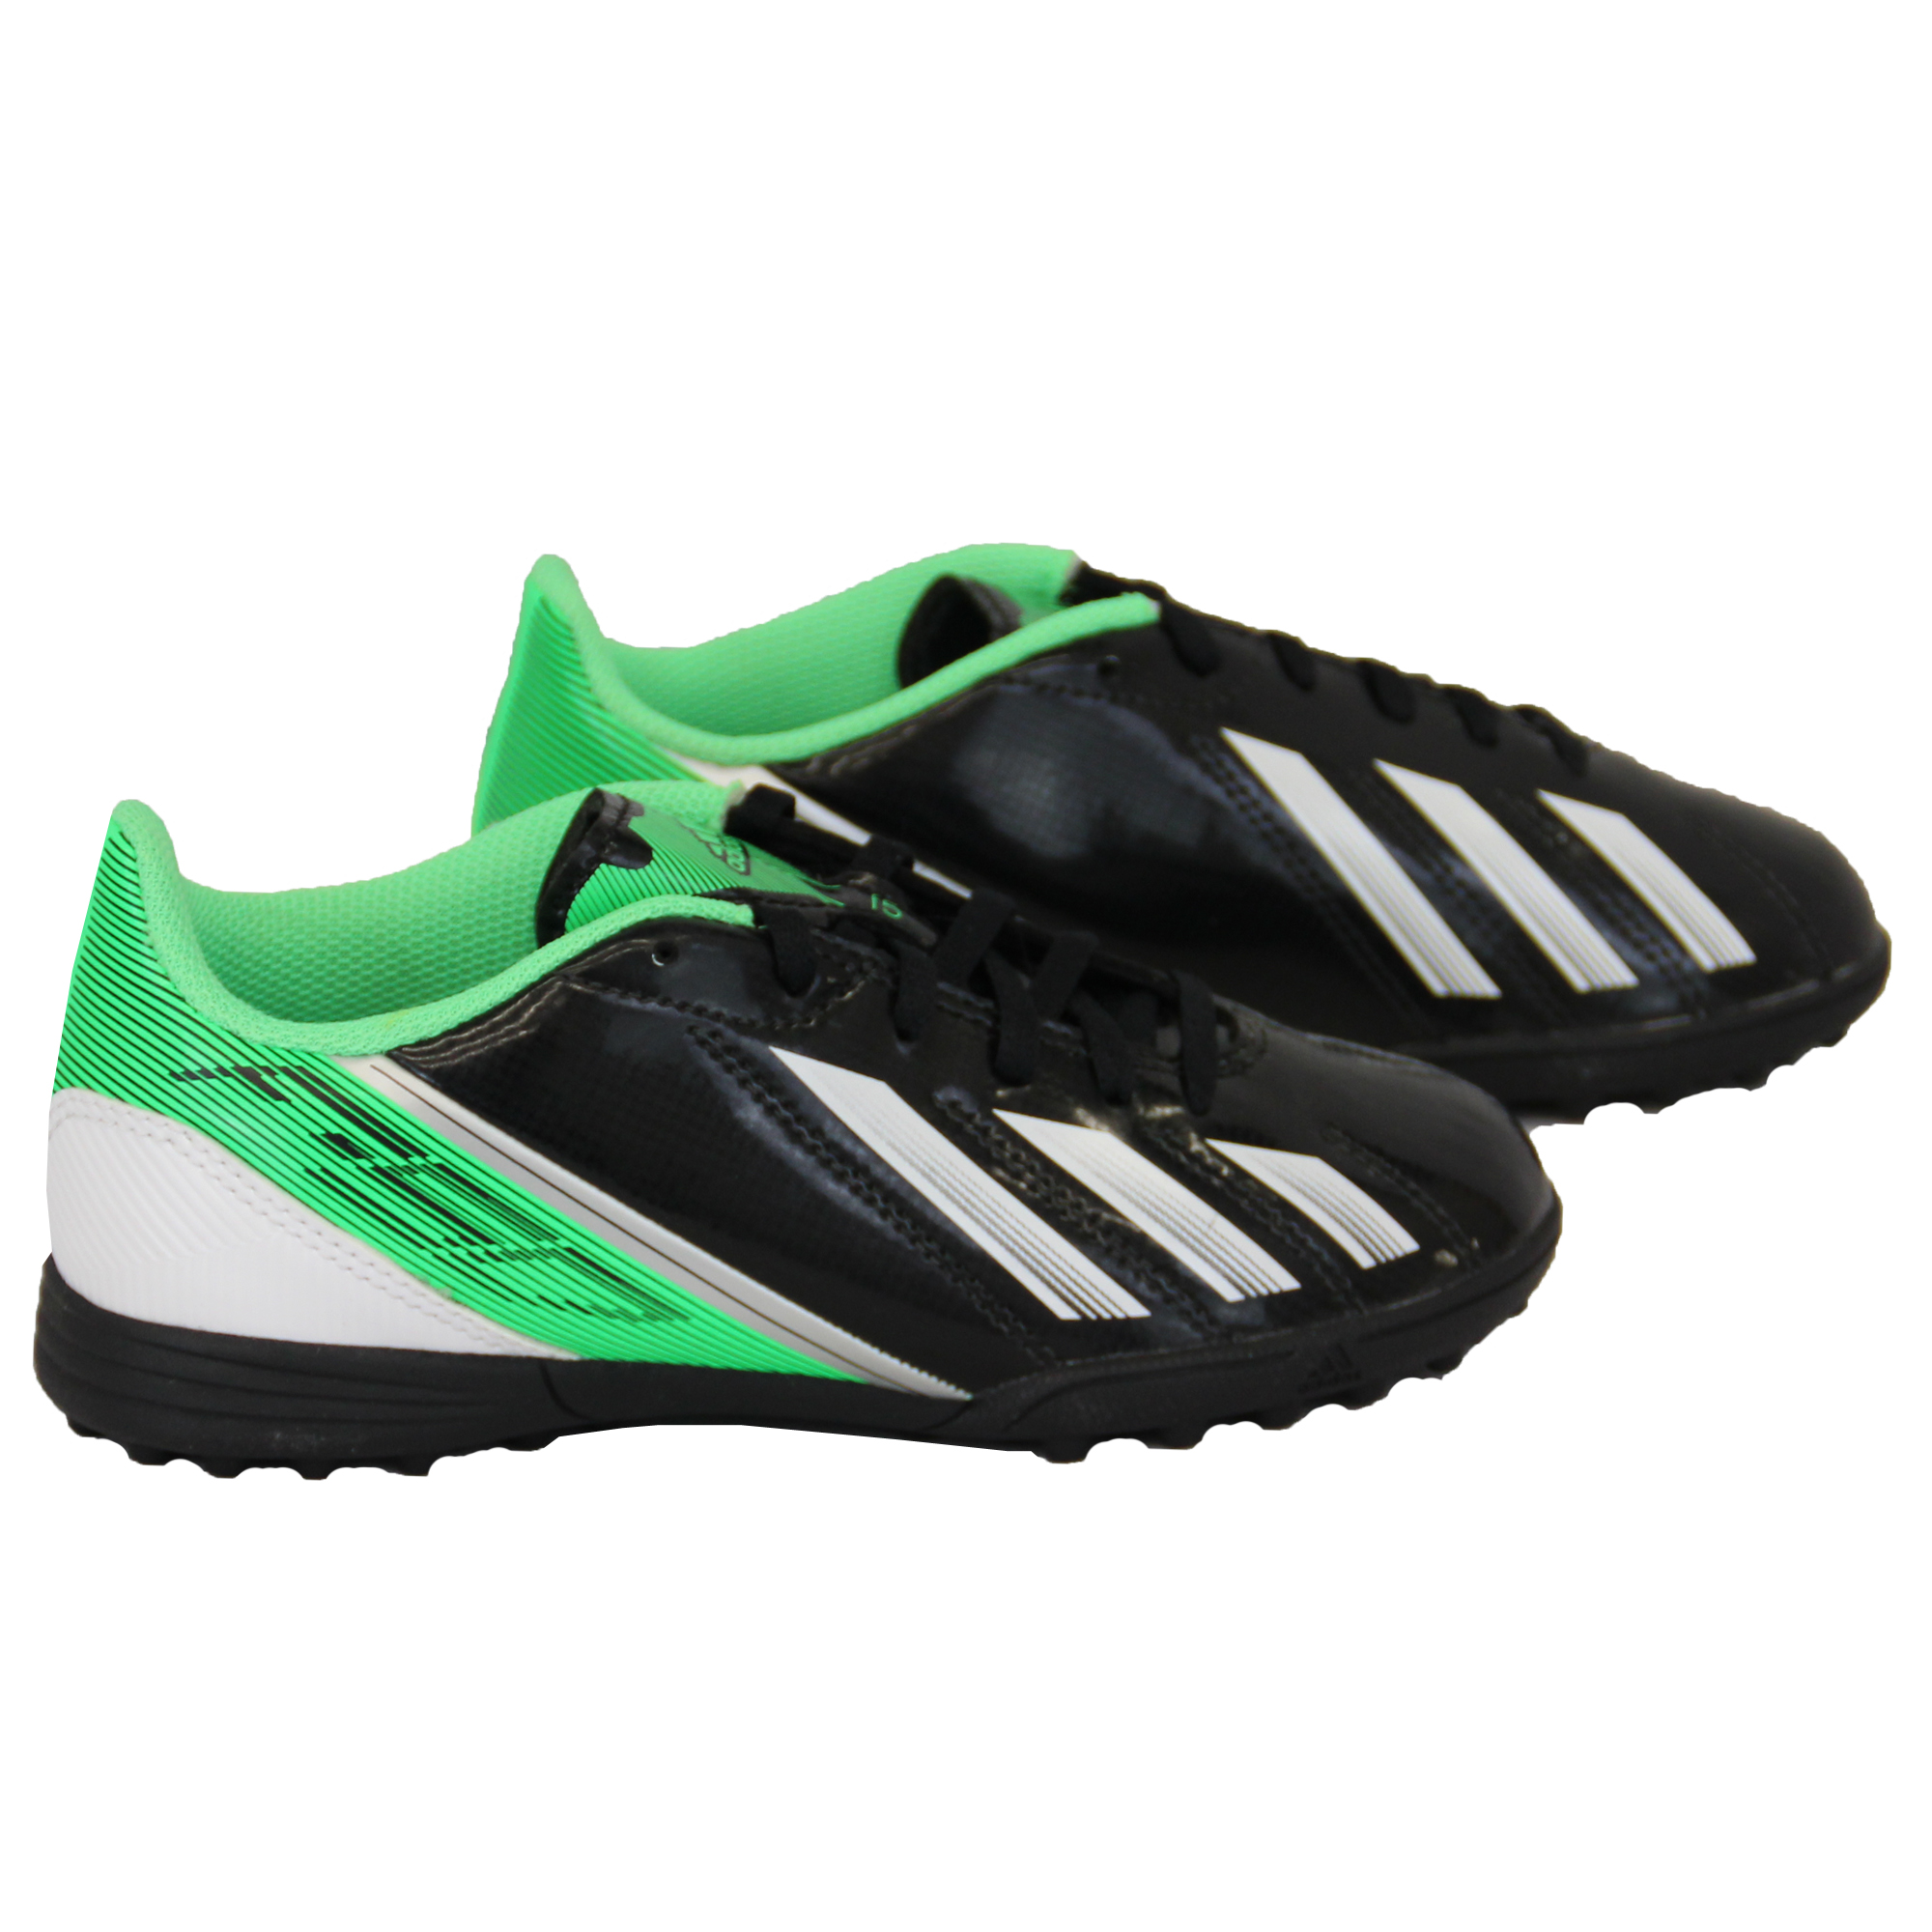 Boys-ADIDAS-Trainers-Kids-Football-Soccer-Astro-Turf-Shoes-Lace-Up-Neon-Youth thumbnail 5